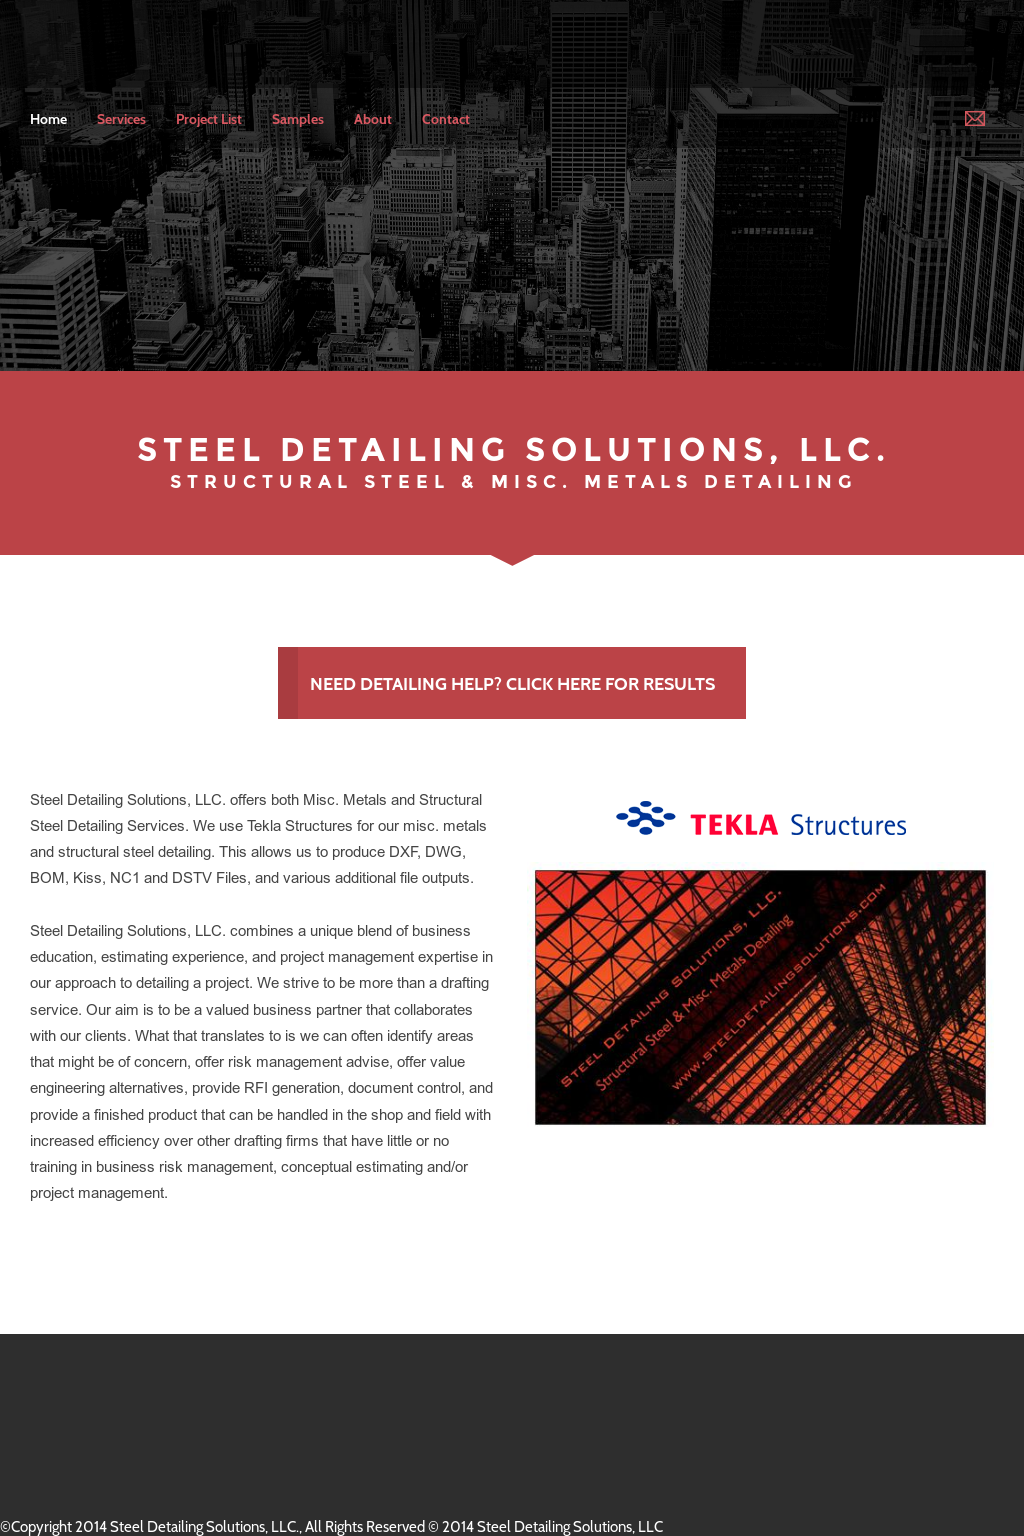 Steel Detailing Solutions Competitors, Revenue and Employees - Owler